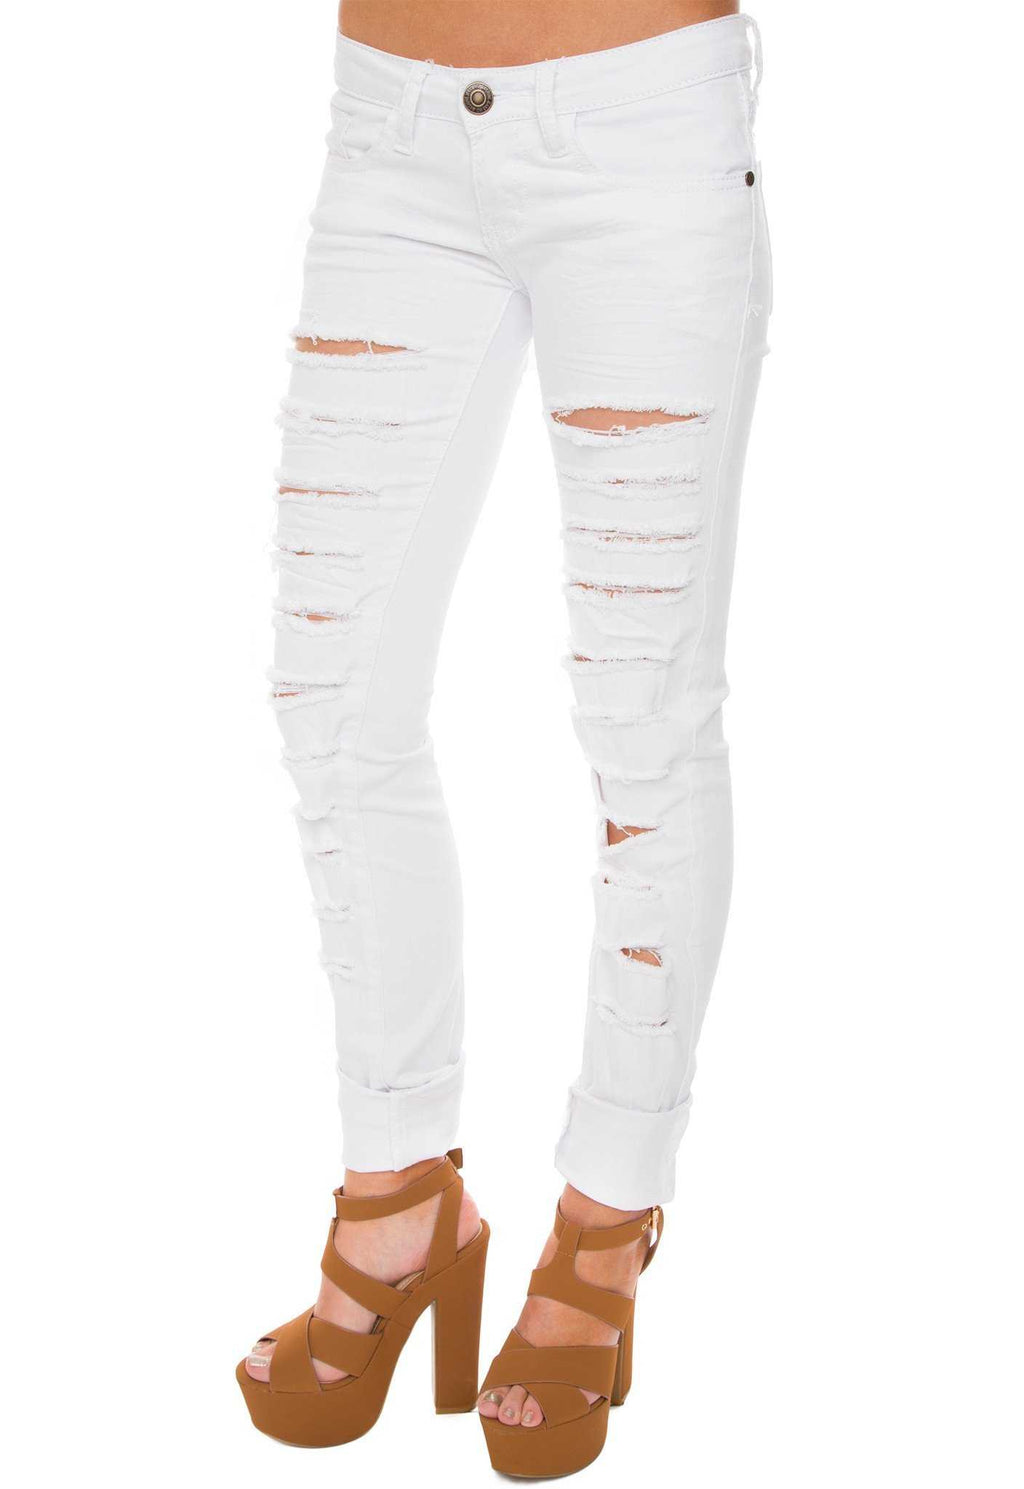 Pants - Nicola Distressed Jeans - White